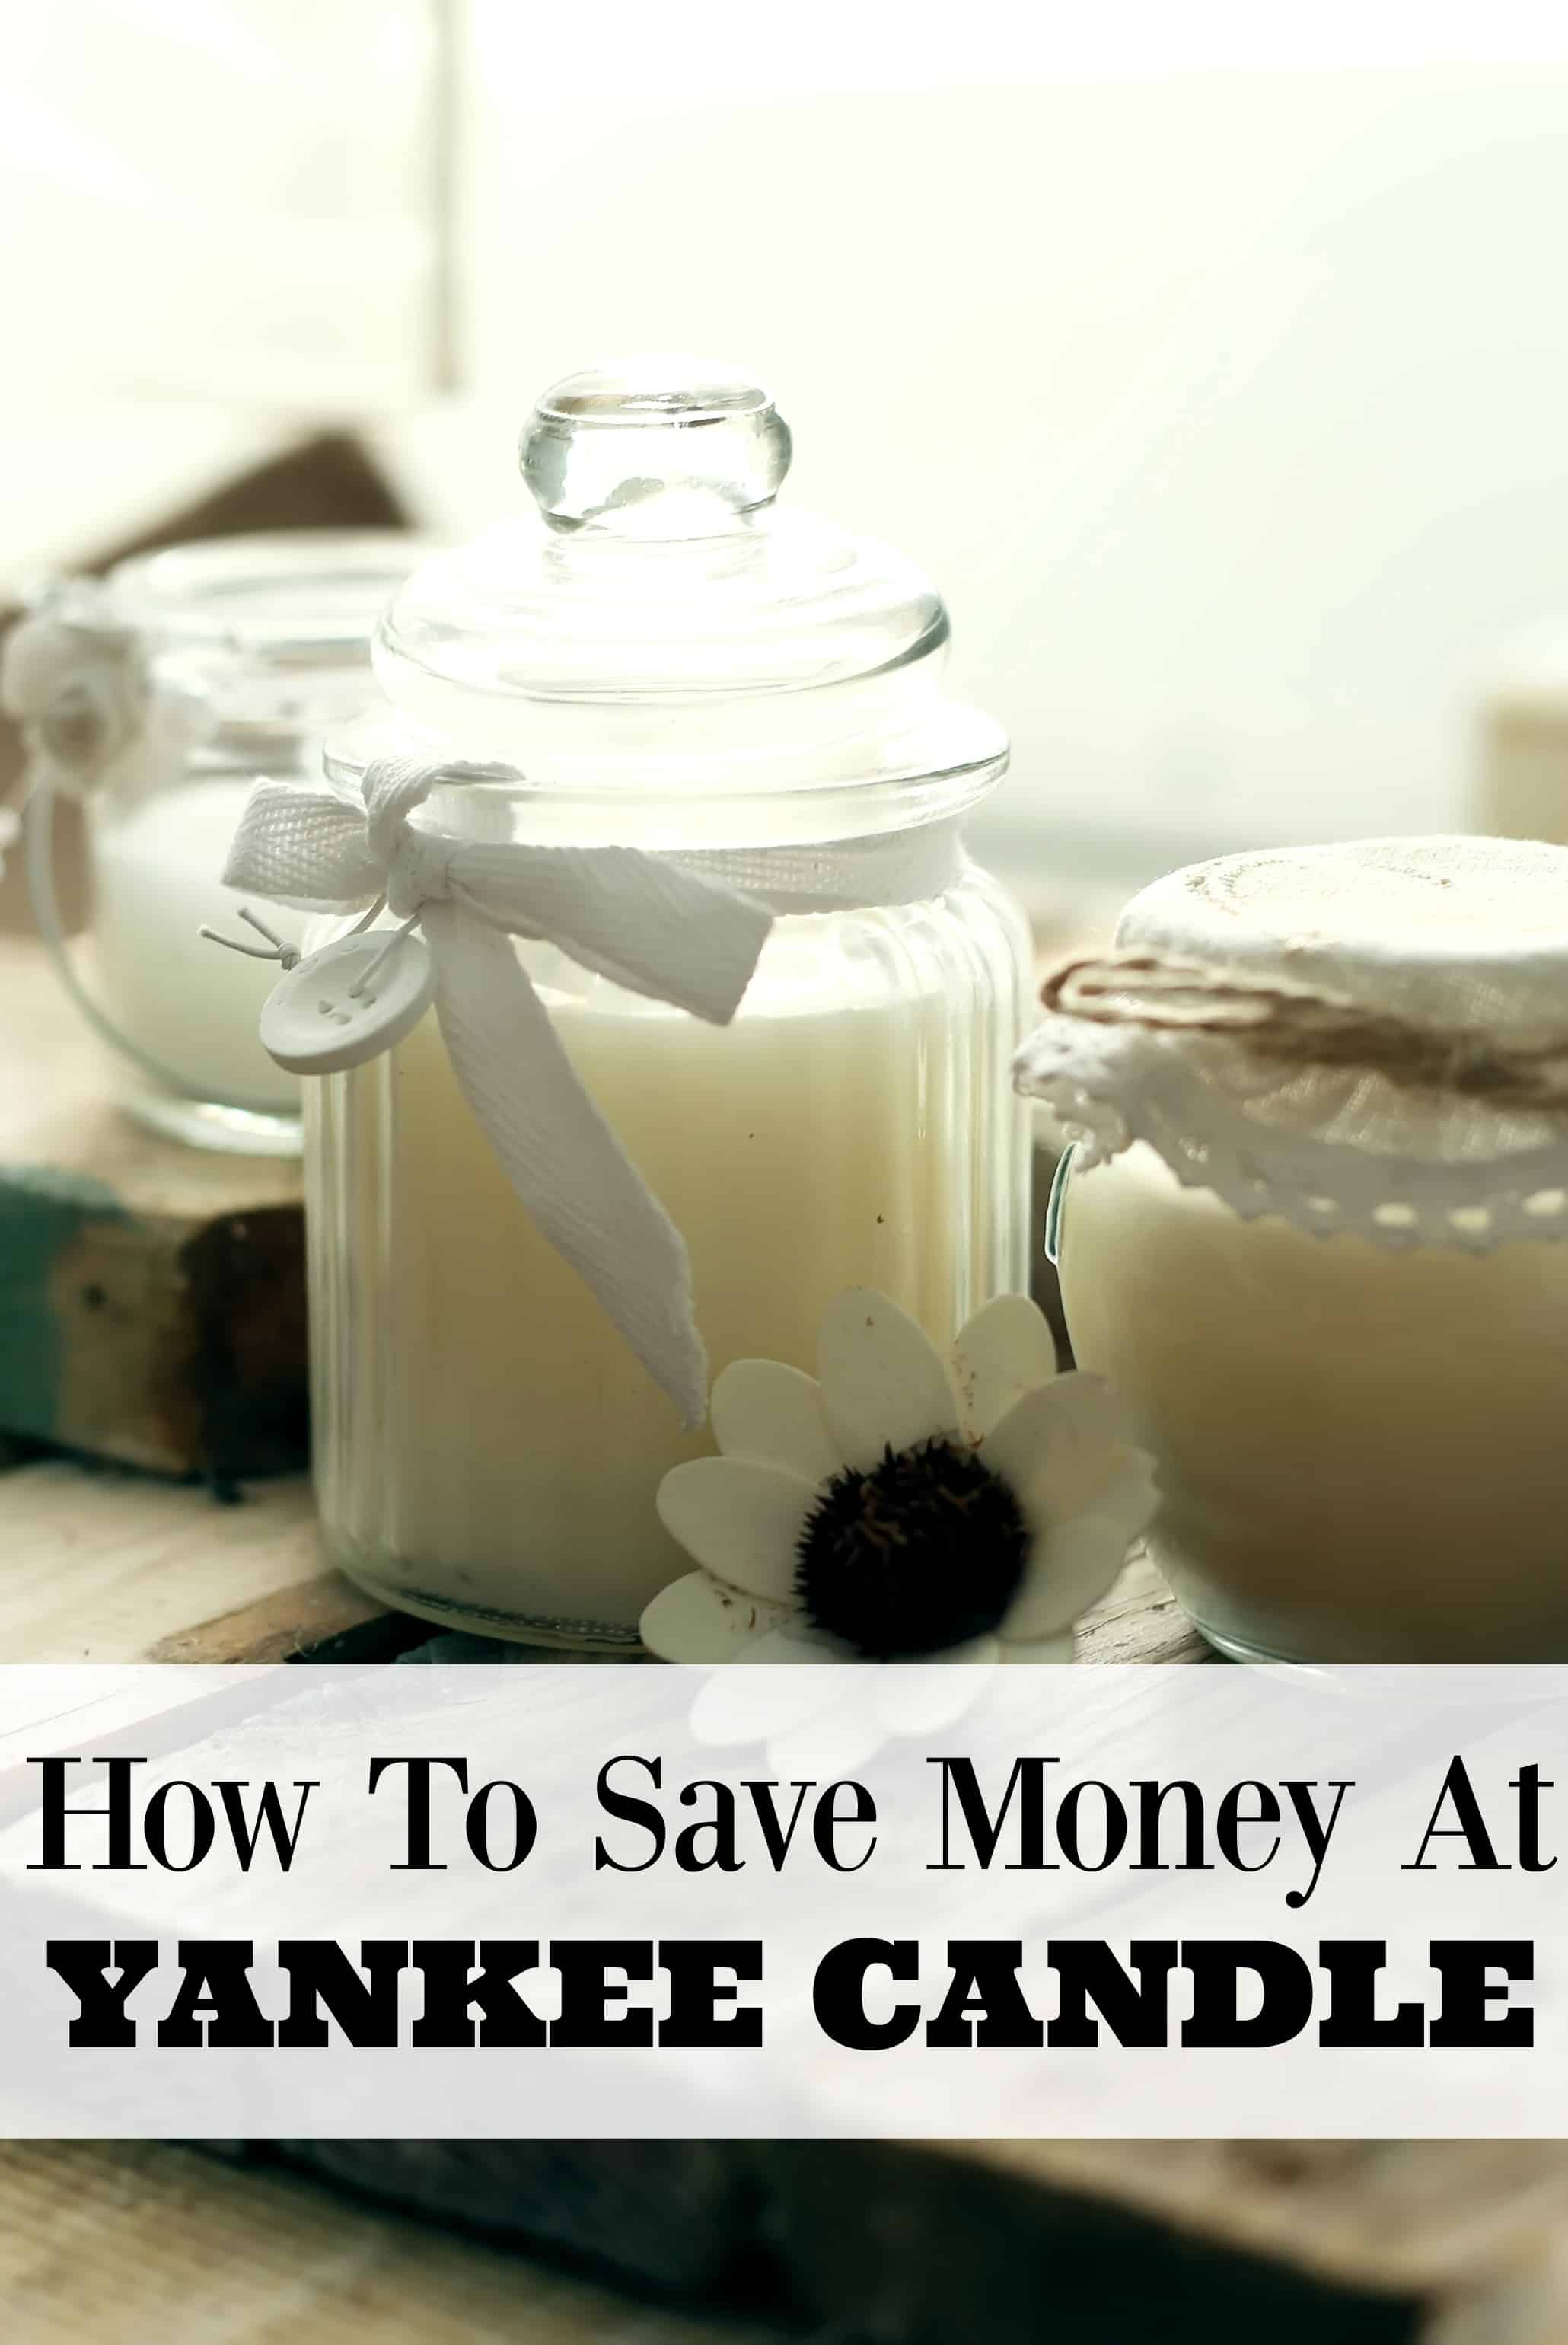 Tiny Home Designs: How To Save Money At Yankee Candle